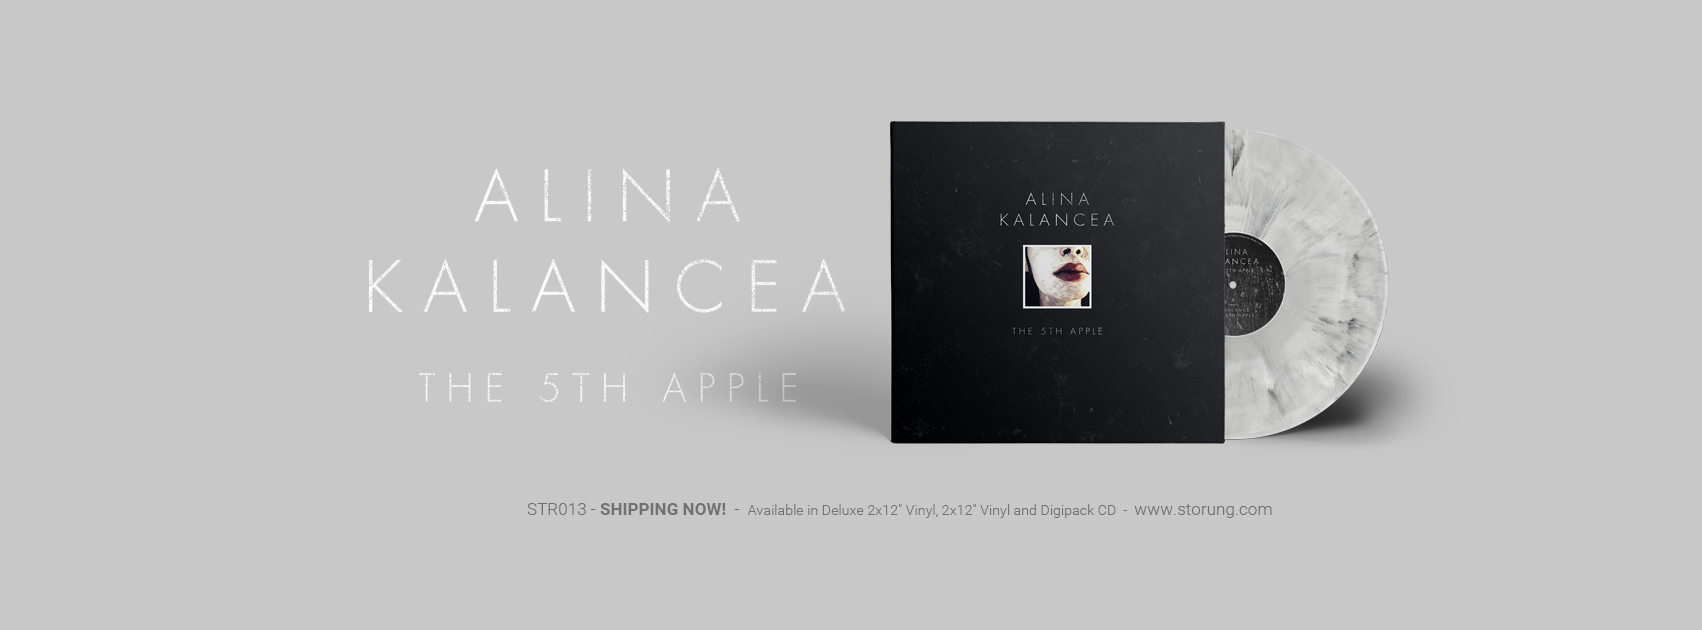 Alina Kalancea – The 5th Apple